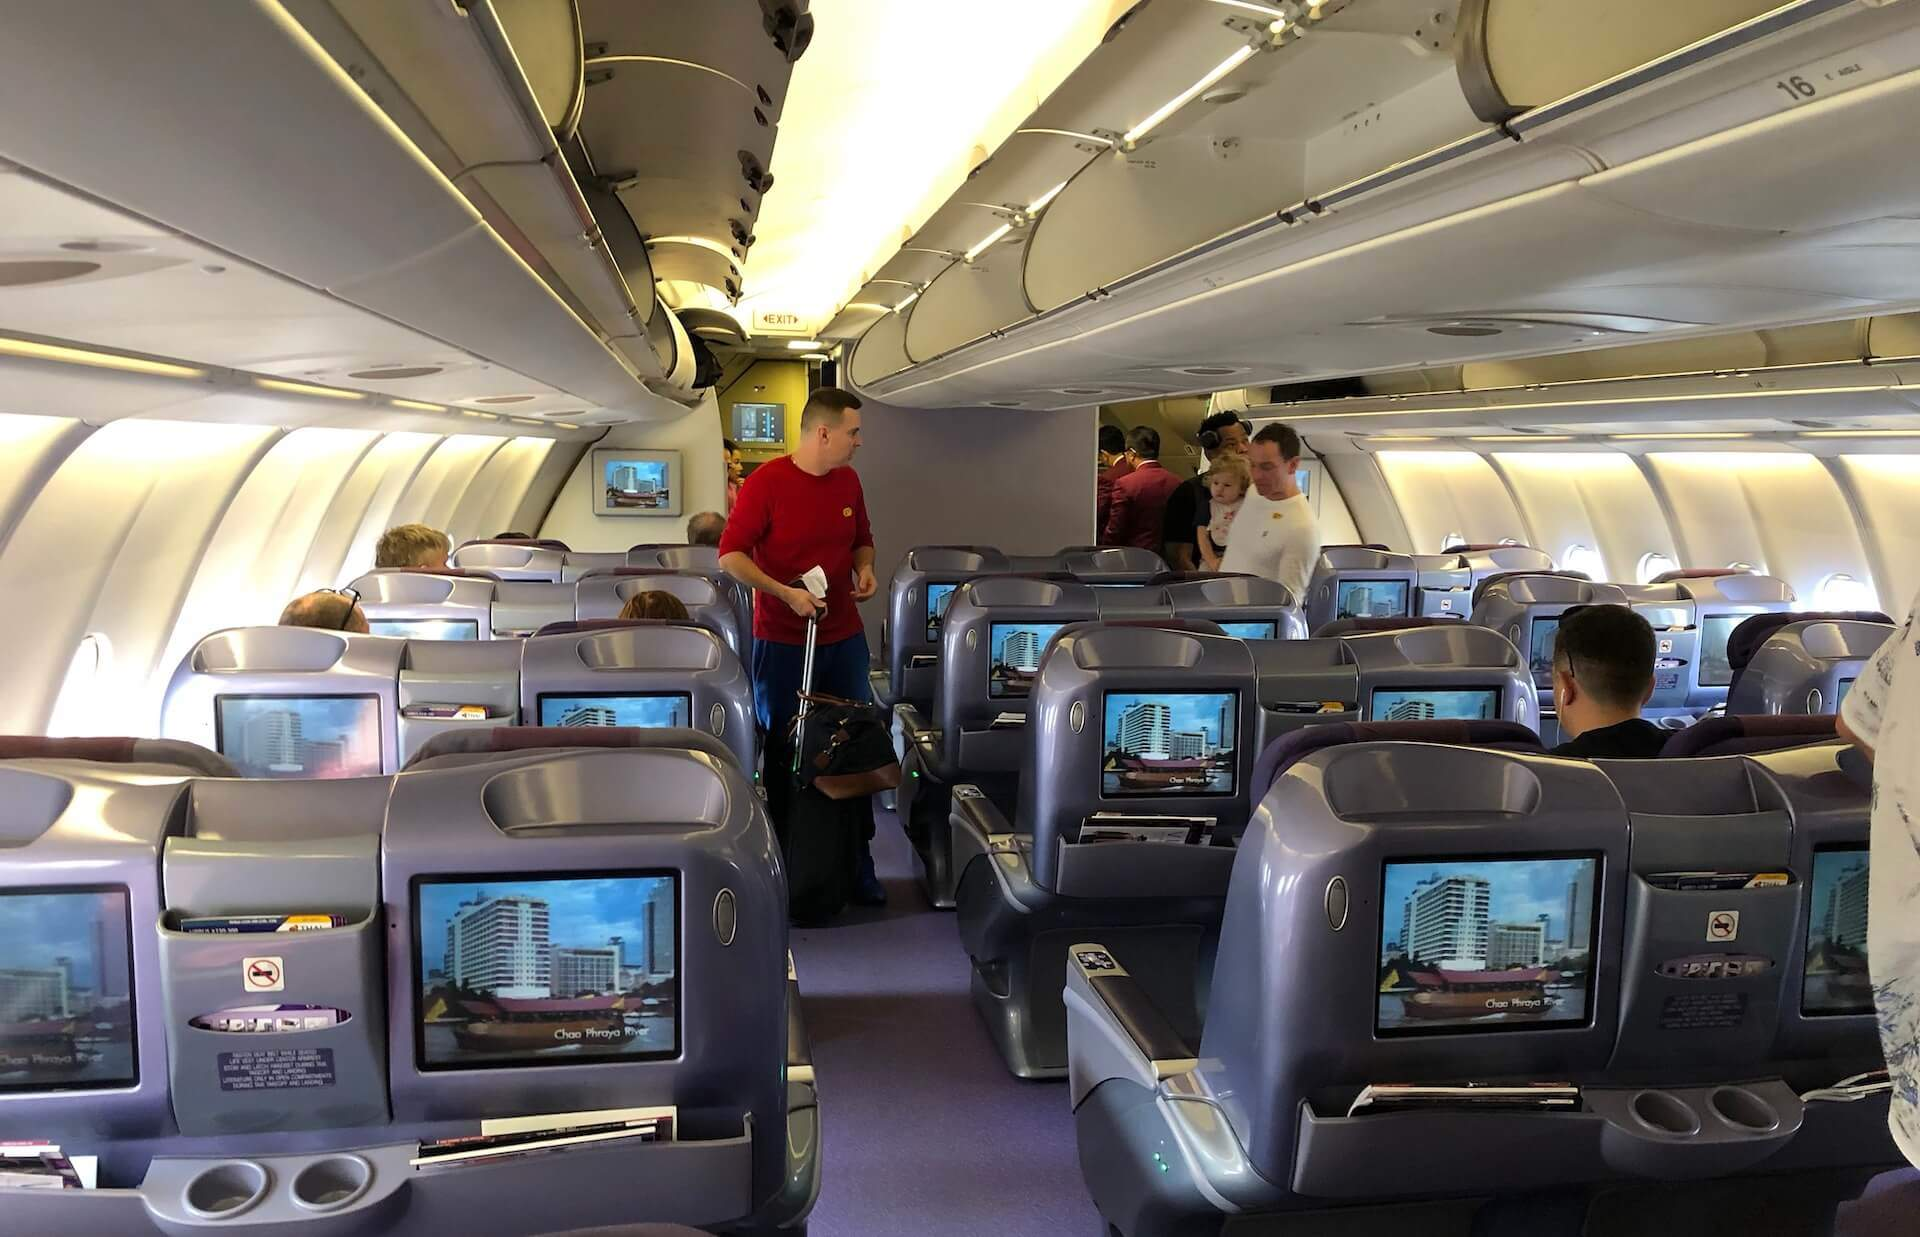 Thai Airways Royal Silk Airbus A330-300 Business Class Kabine